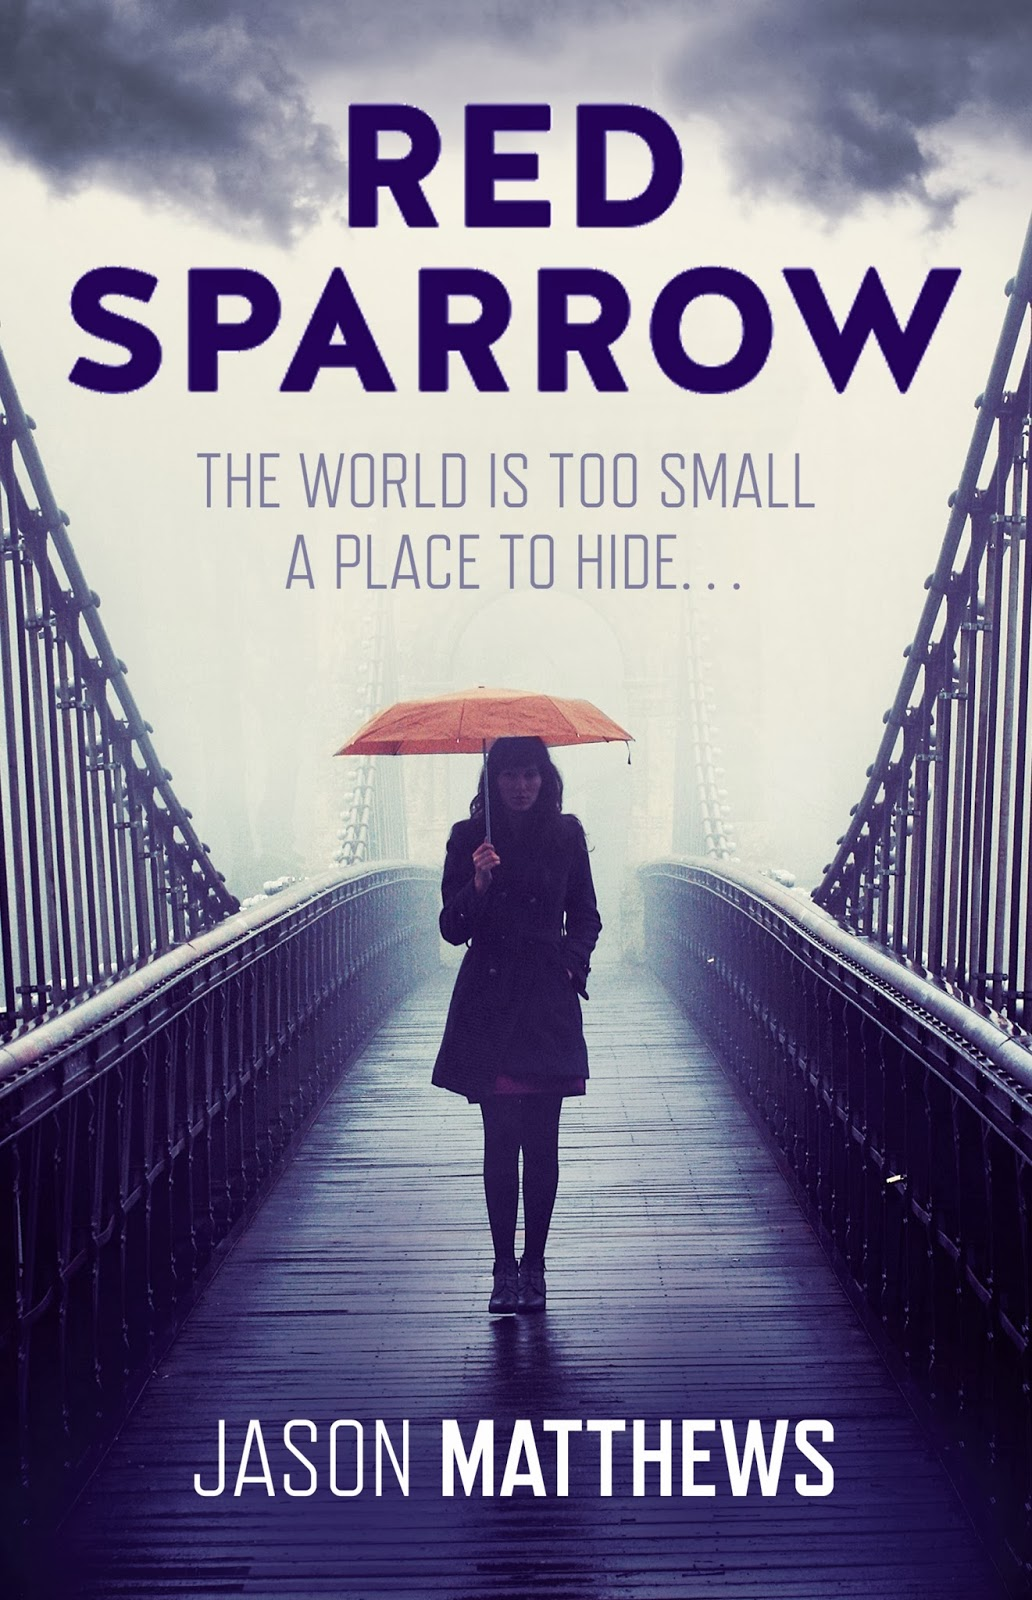 http://discover.halifaxpubliclibraries.ca/?q=title:red%20sparrow